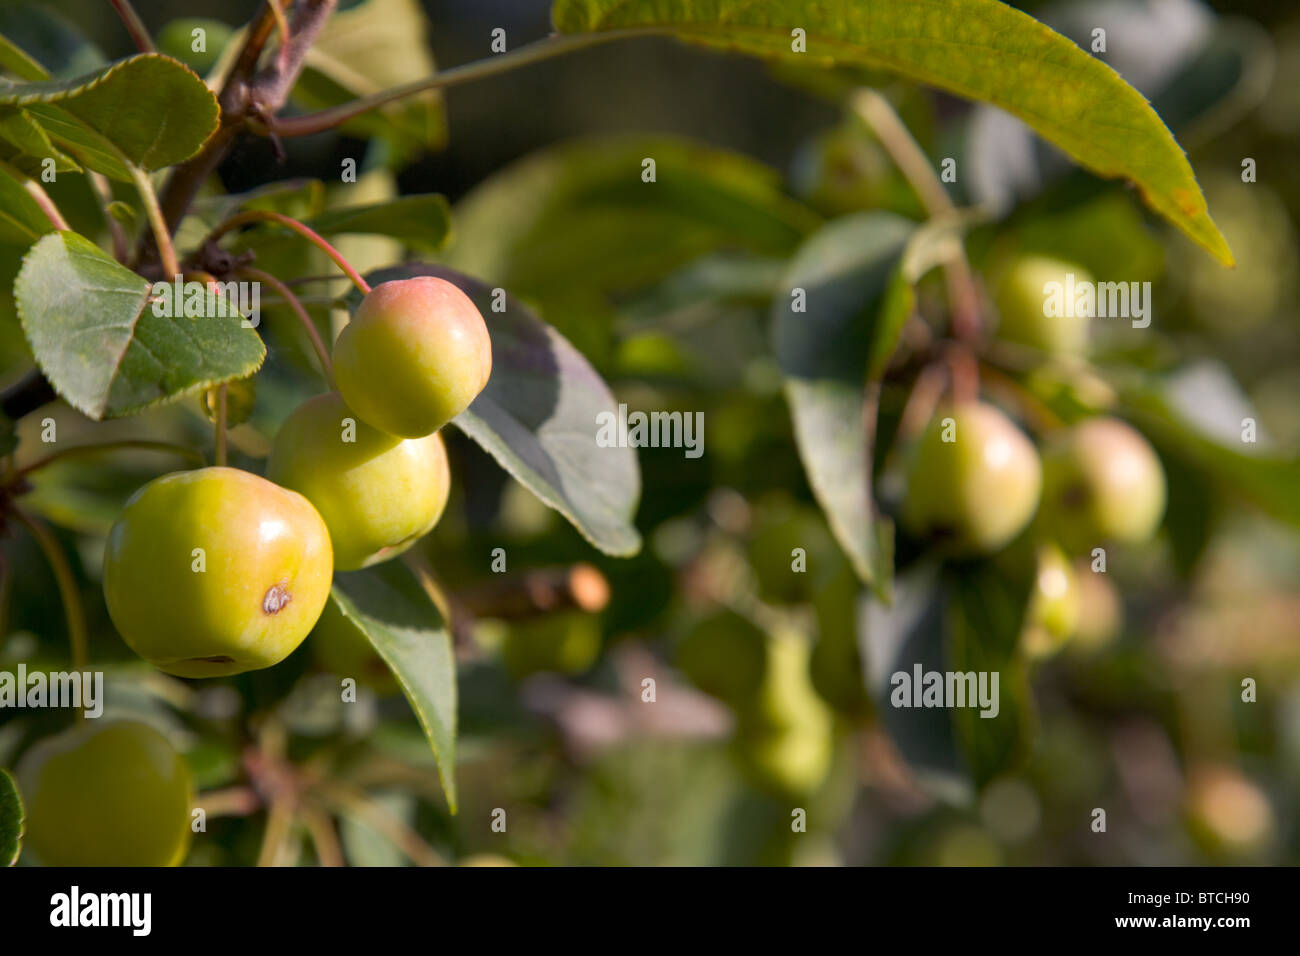 Apples in an English orchard - Stock Image